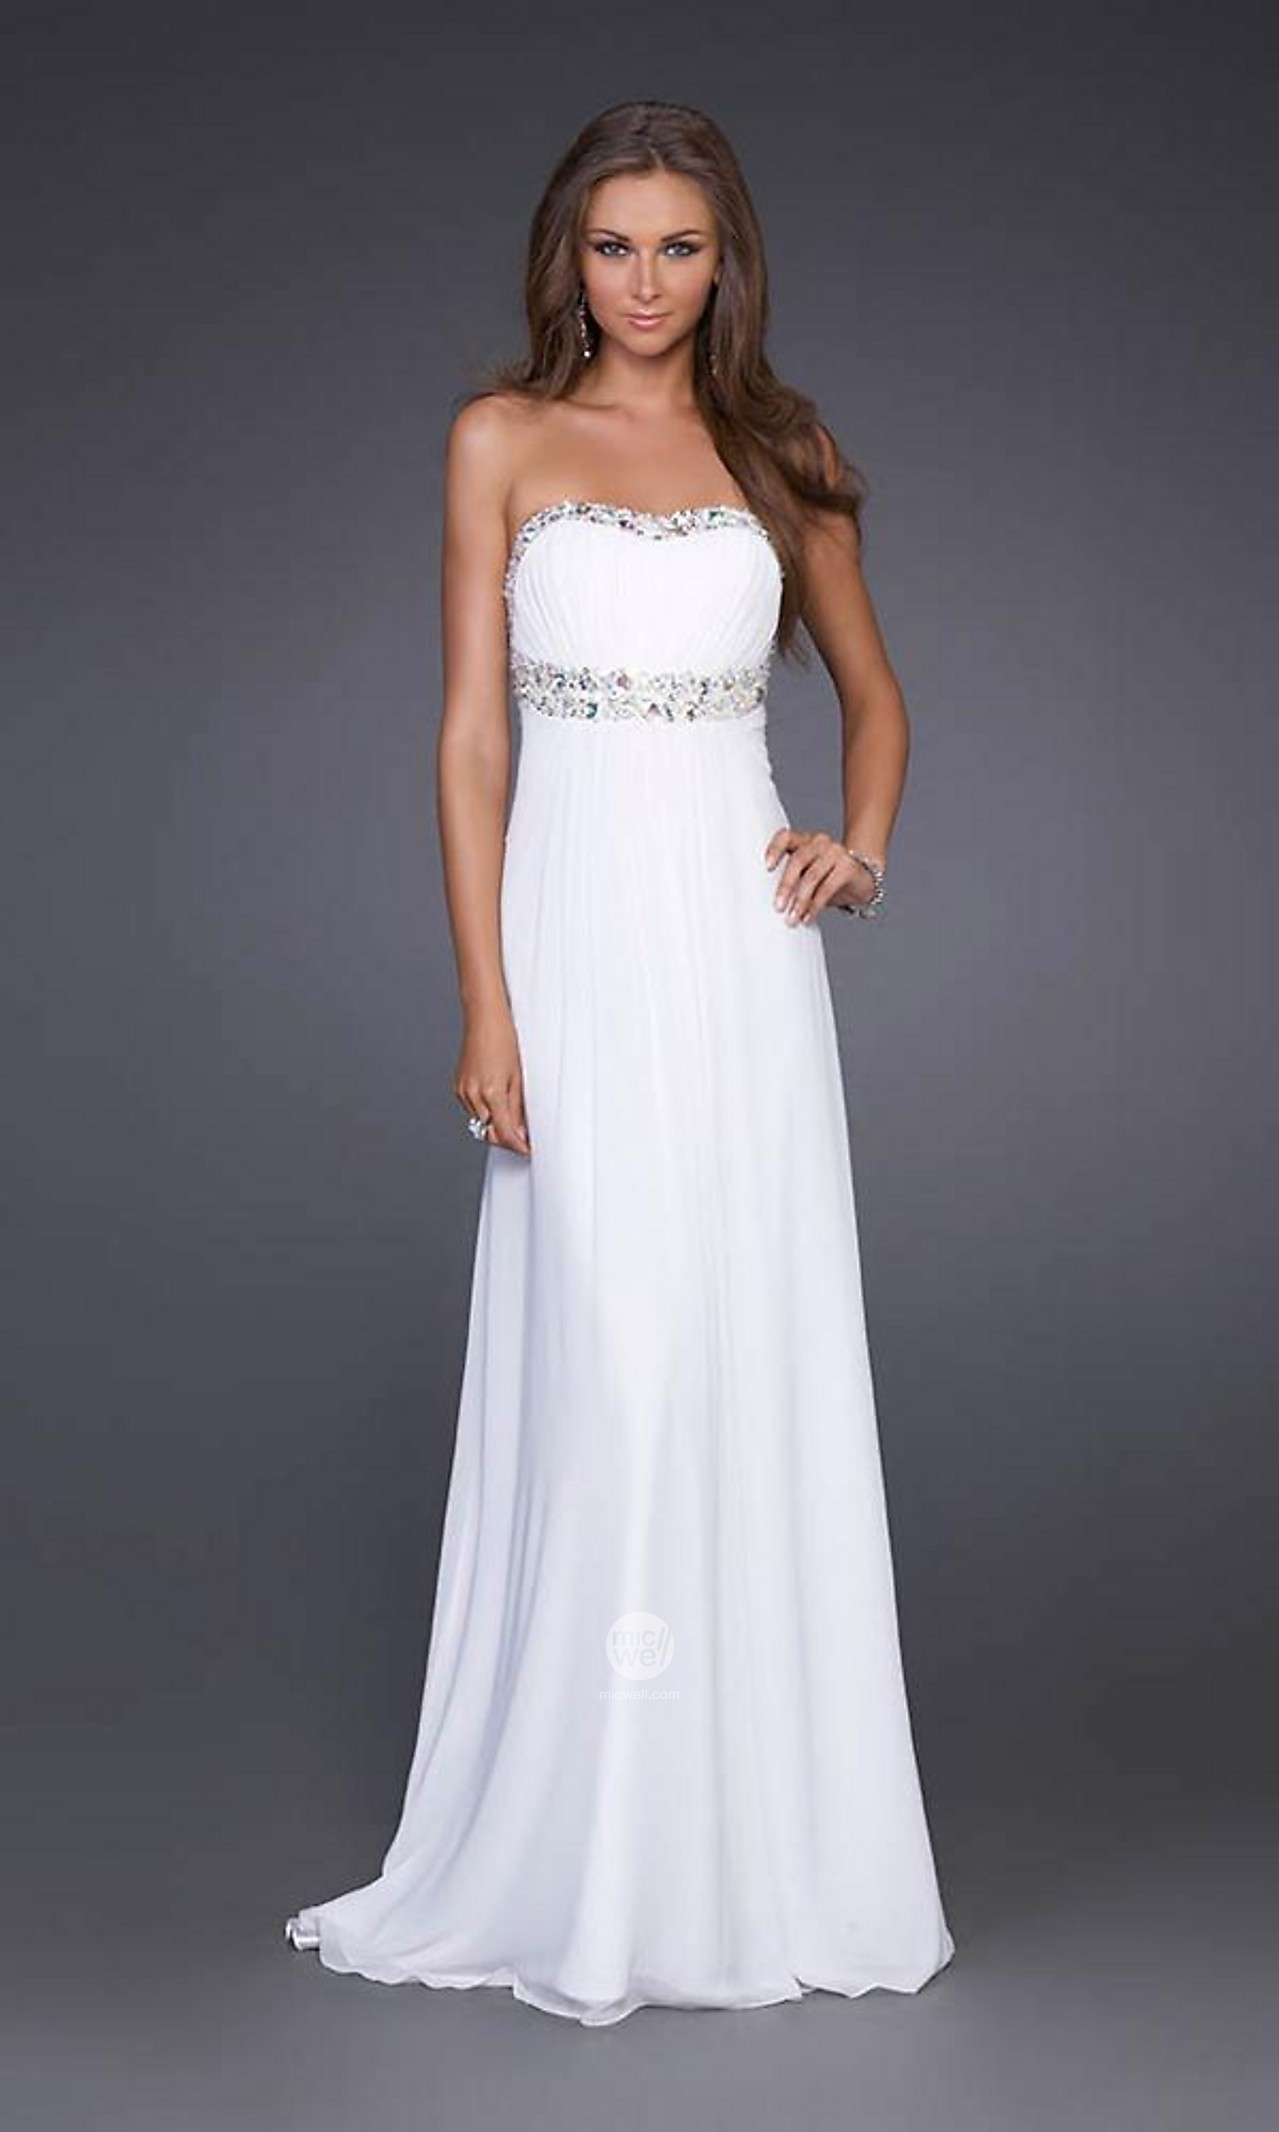 white evening dresses with sleeves_Evening Dresses_dressesss